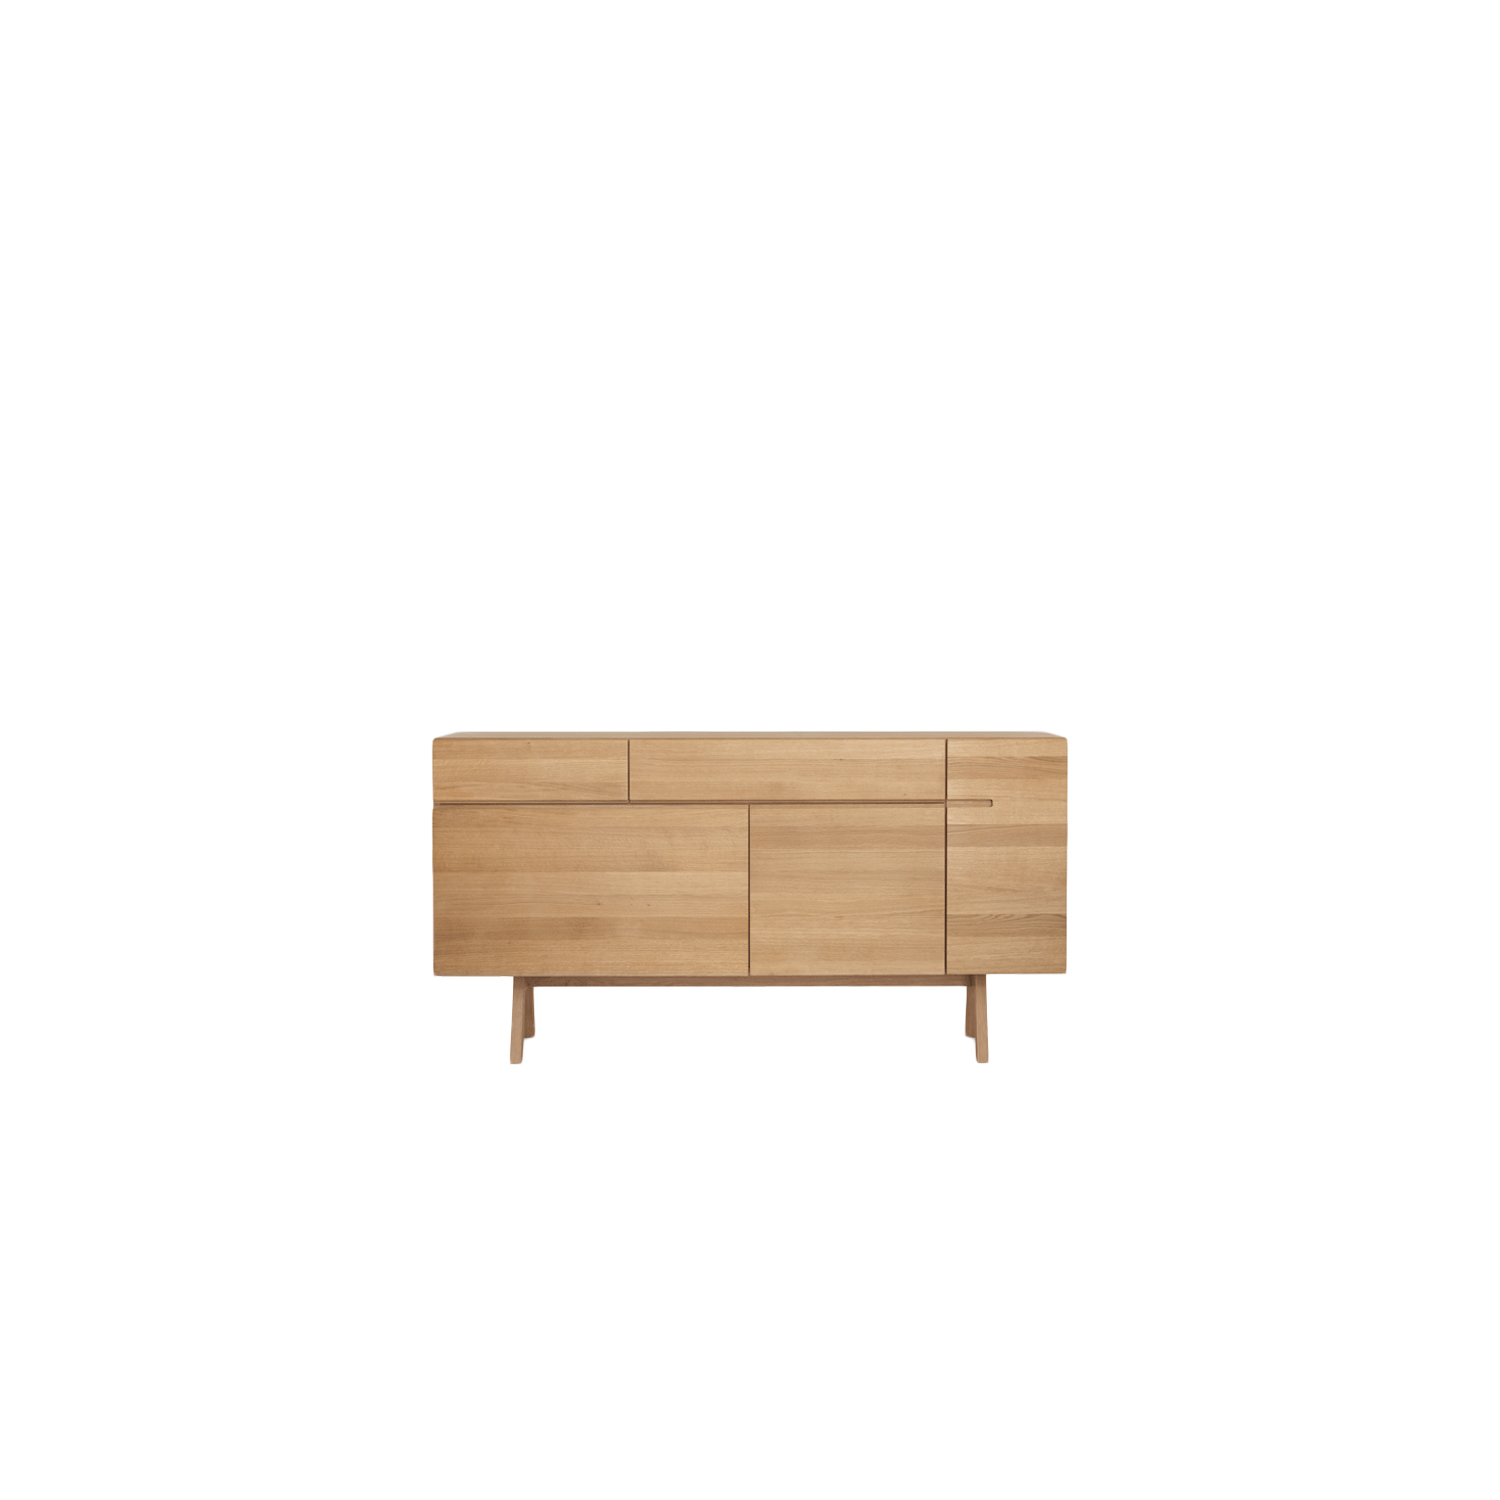 Side Atelier Sideboard - The sideboard family is based on the 'Modulor' proportions system developed by Le Corbusier. The proportion is a deliberate attempt to replace the rigidity of symmetry with an asymmetrical arrangement that feels correct.  The extent to which details in furniture can change is proven by the new under-frame version Atelier for our sideboards. The 25 cm trestle-like construction was developed for the LOW, PODEST and SIDE. The new legs give the concept a contemporary, crafty, appealing look. And it is also a higher alternative to the previous versions.  The Side Atelier sideboard is available in white oiled ash, oiled oak, oiled knotty oak, colour stained oak, oiled American cherry, oiled American walnut and oiled European walnut.   The drawer is comb jointed and has fully extendable runners, and solid hornbeam is used for the interior parts. Mirror-inverted is available at an additional charge and also the flap is available instead of the drawer upon request.  For colour stained oak options, please refer to the catalogue.   Matter of Stuff